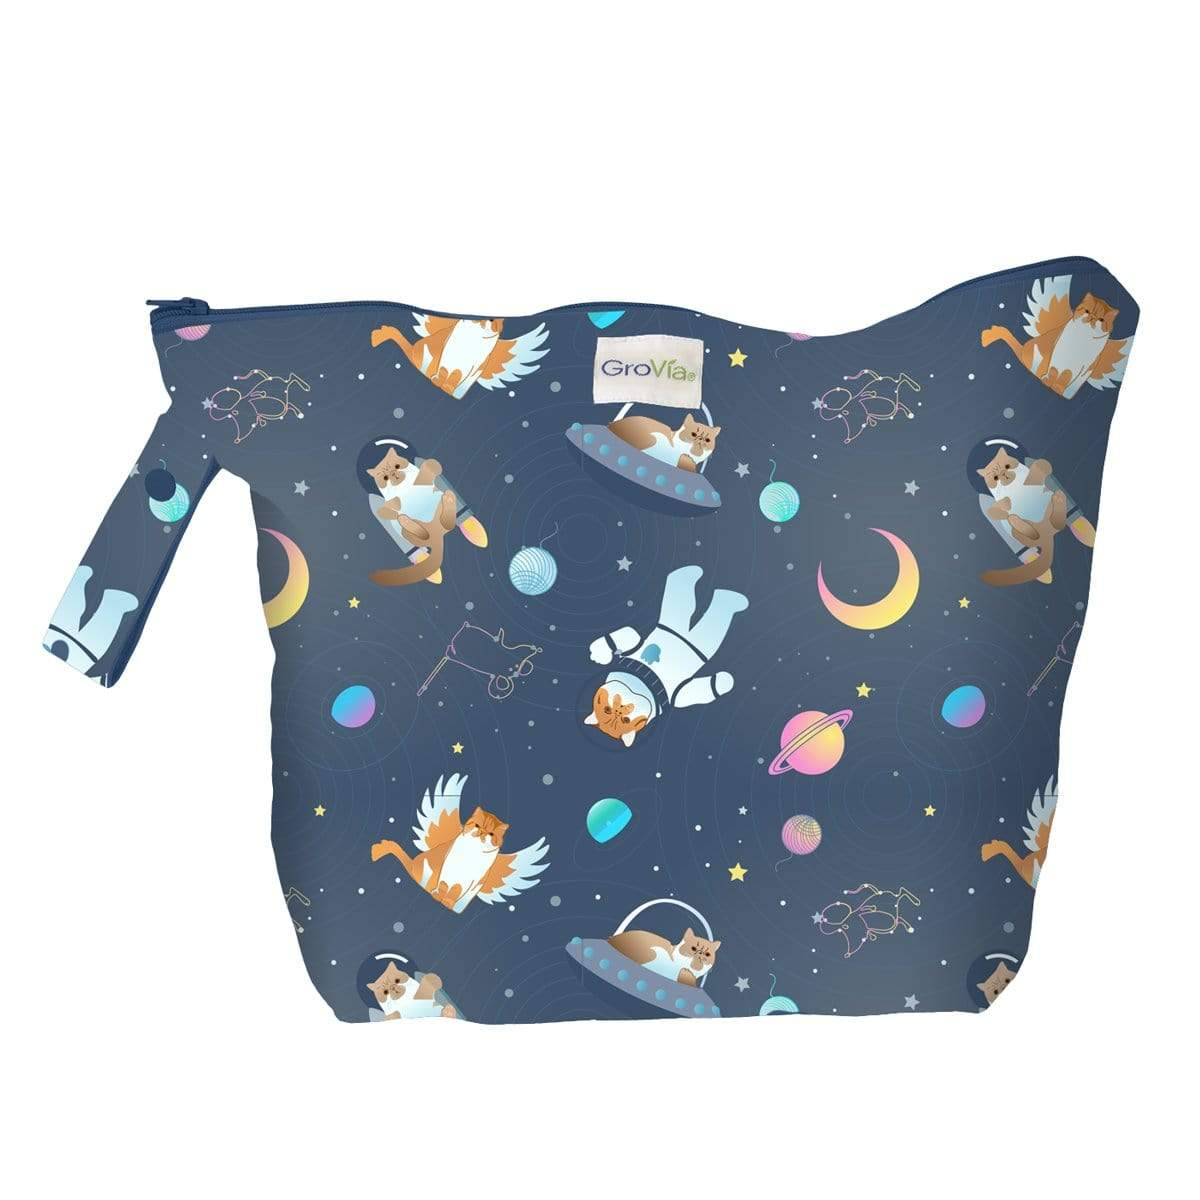 GroVia Zippered Wet Bag - All Good Cats Go To Space